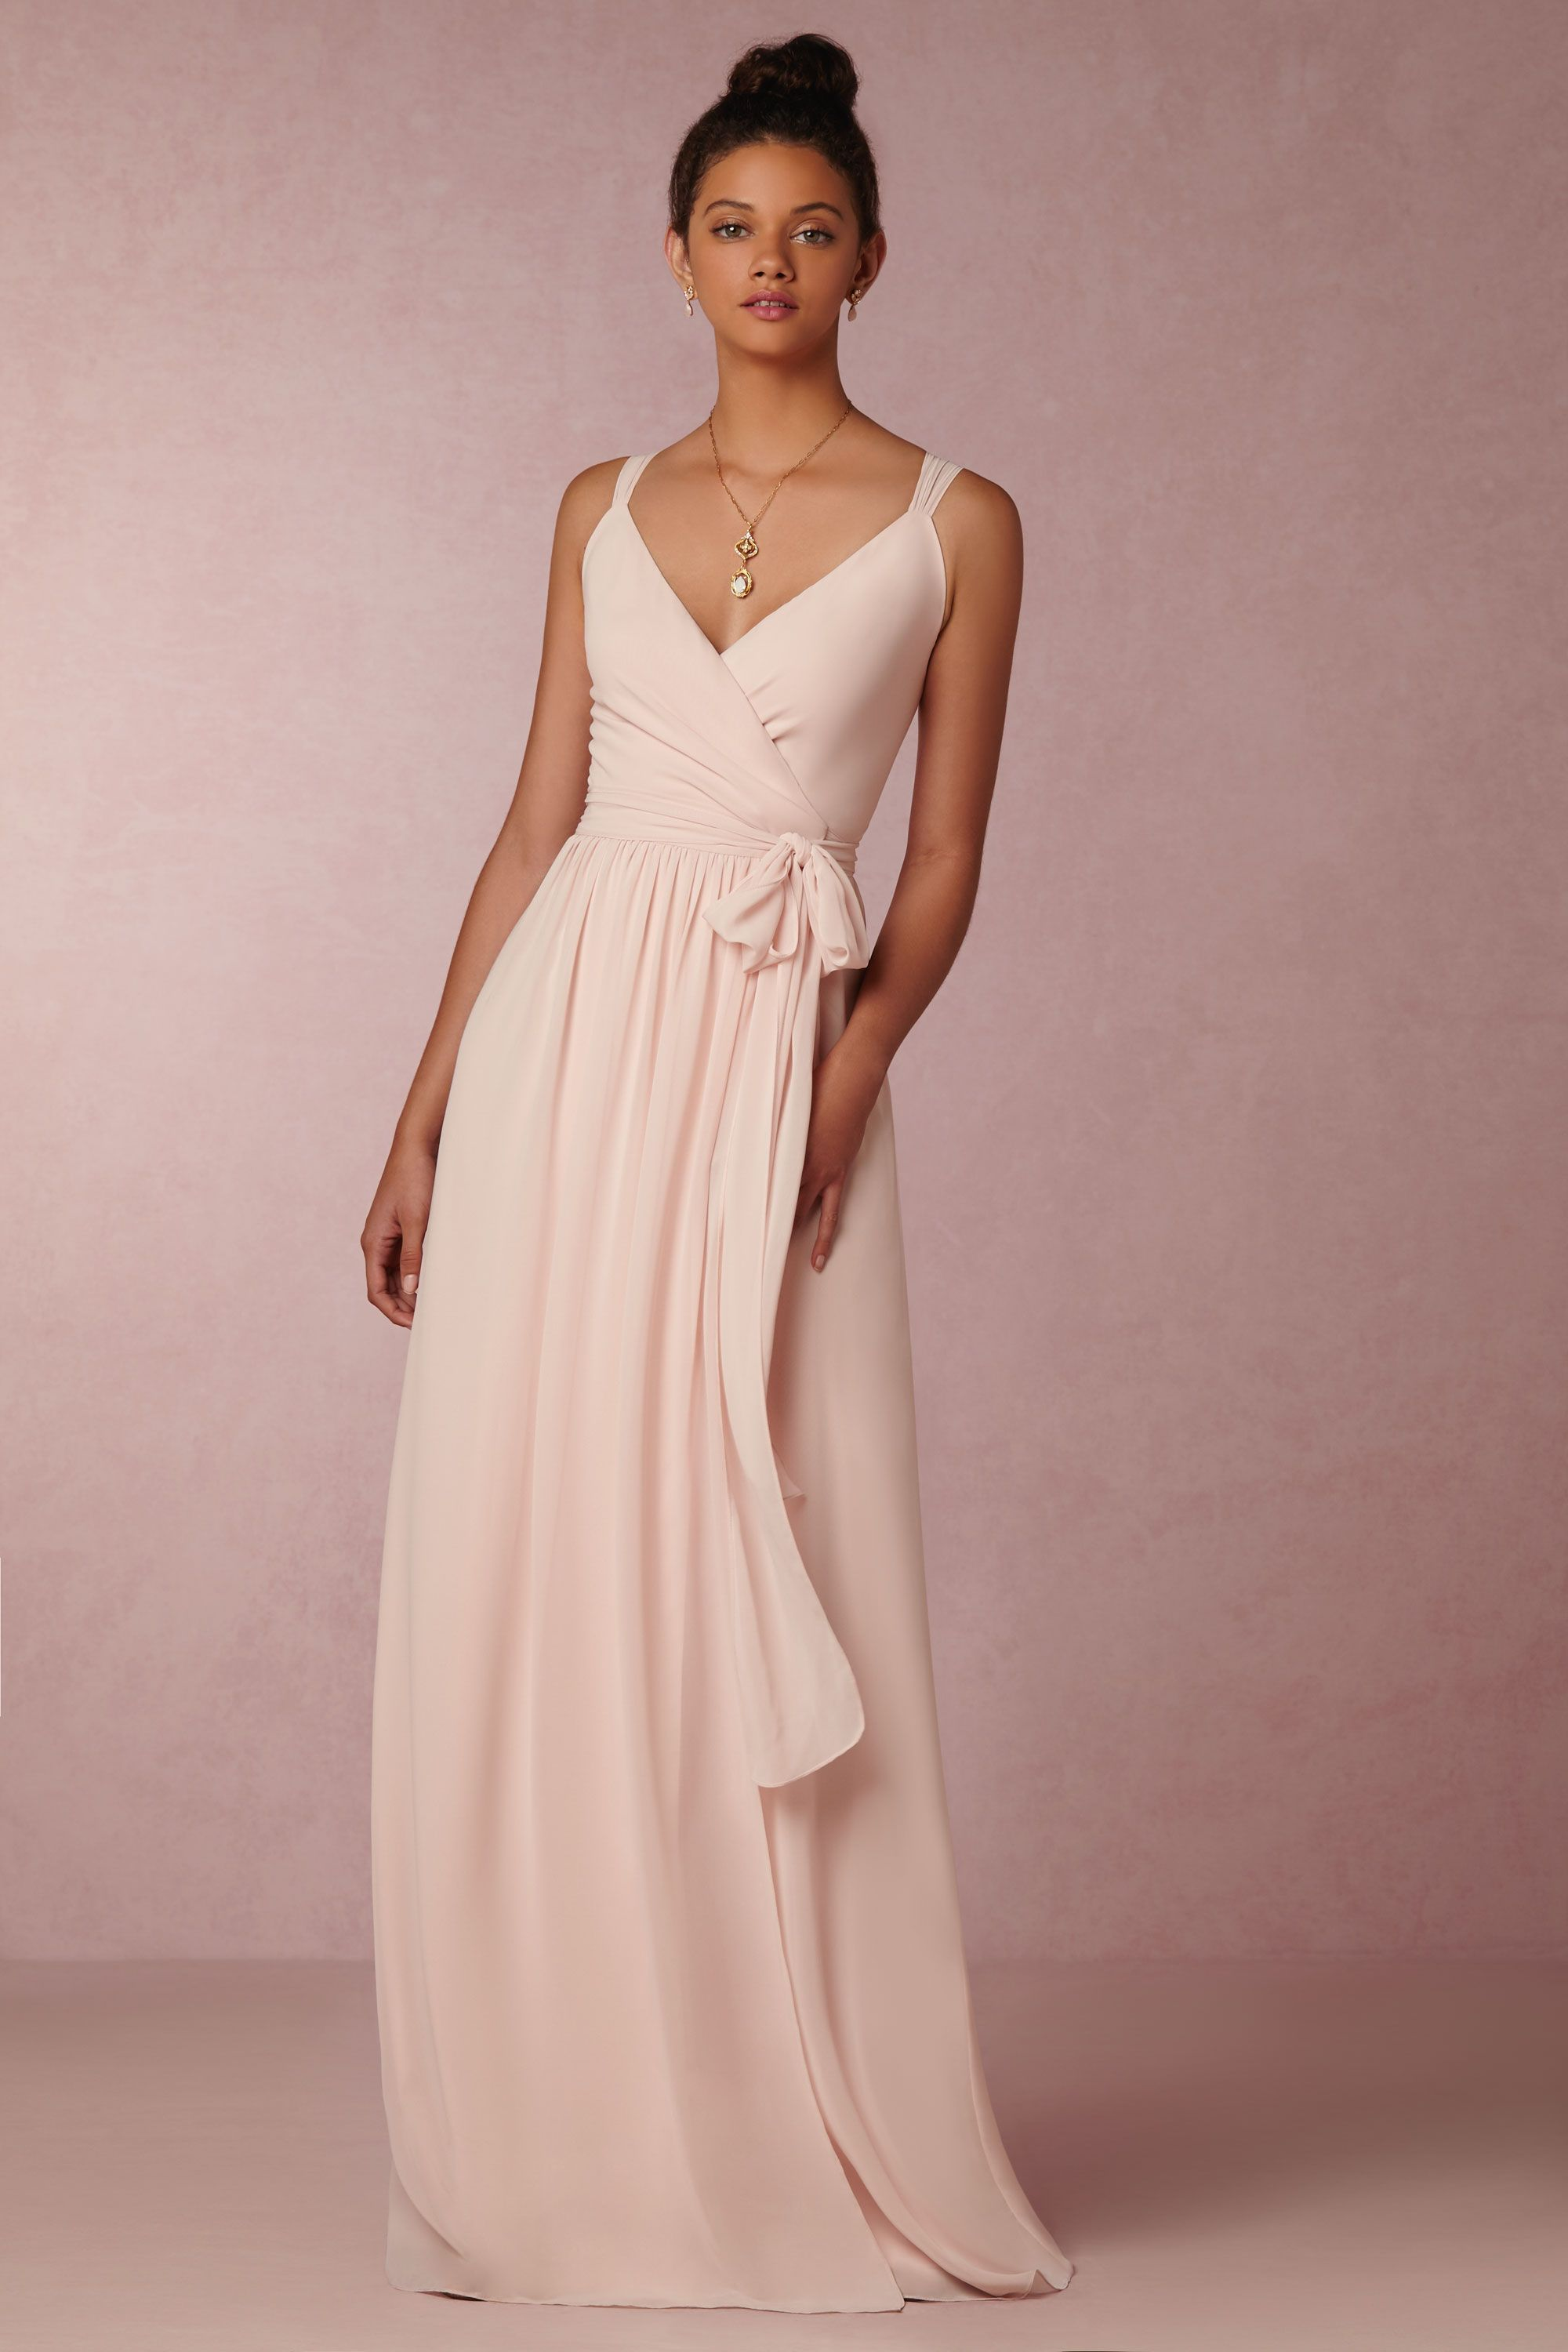 Cadence Dress from @BHLDN | Bride | Pinterest | Damitas de honor ...